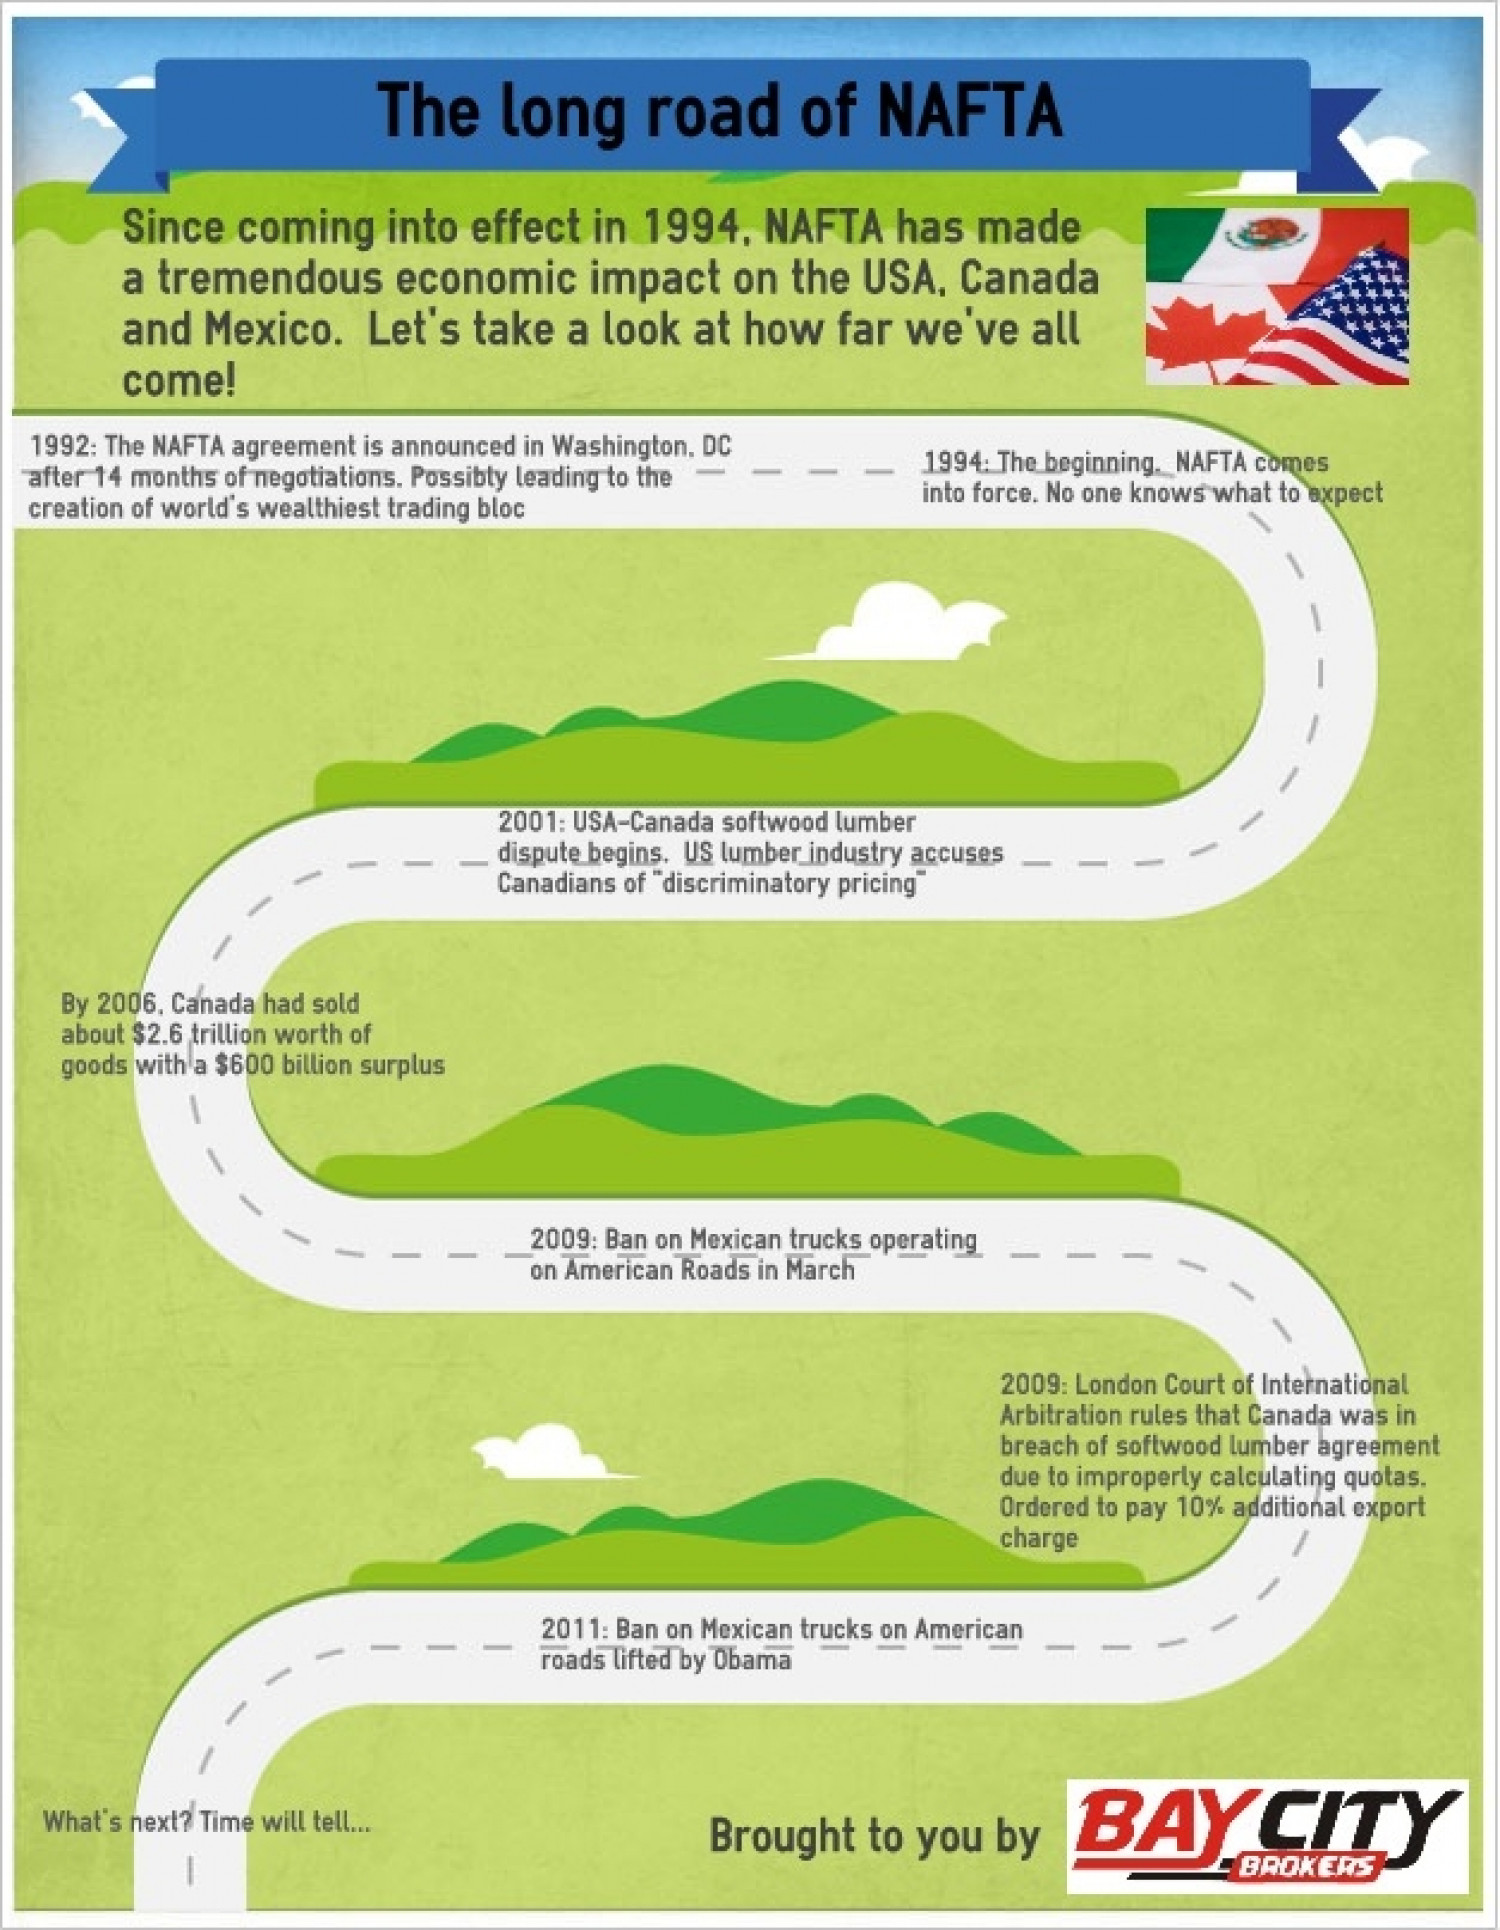 The long road of nafta visual the long road of nafta infographic sciox Images